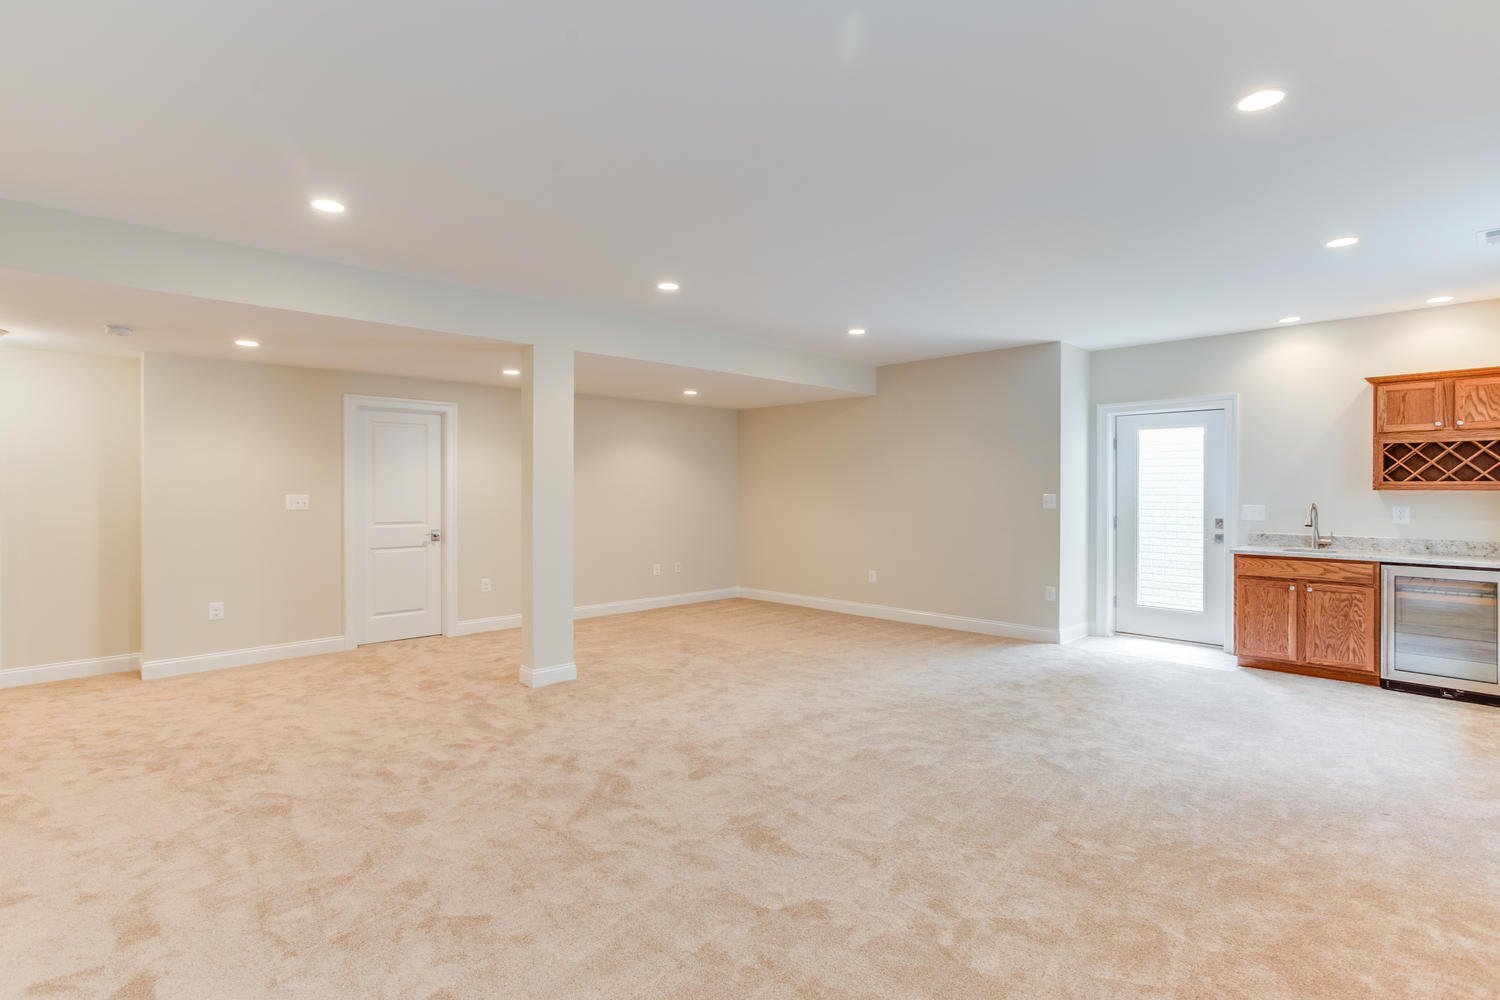 Basement Remodeling Baltimore Model Interior 8 Basement Remodeling Tips  Homeadvisor